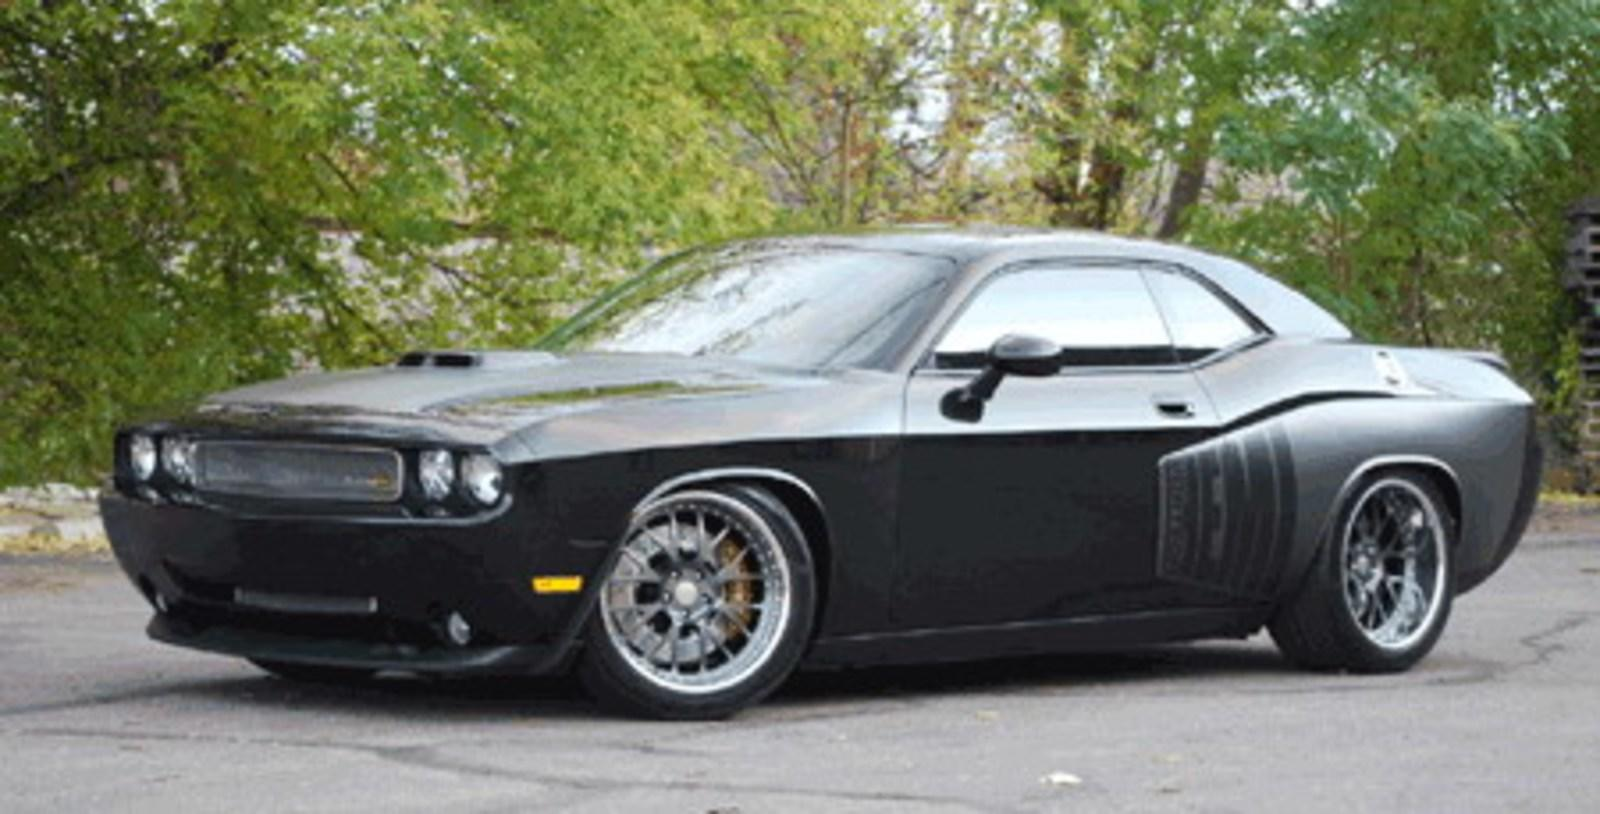 Cdc Group 2 Challenger To Debut At Sema News Top Speed